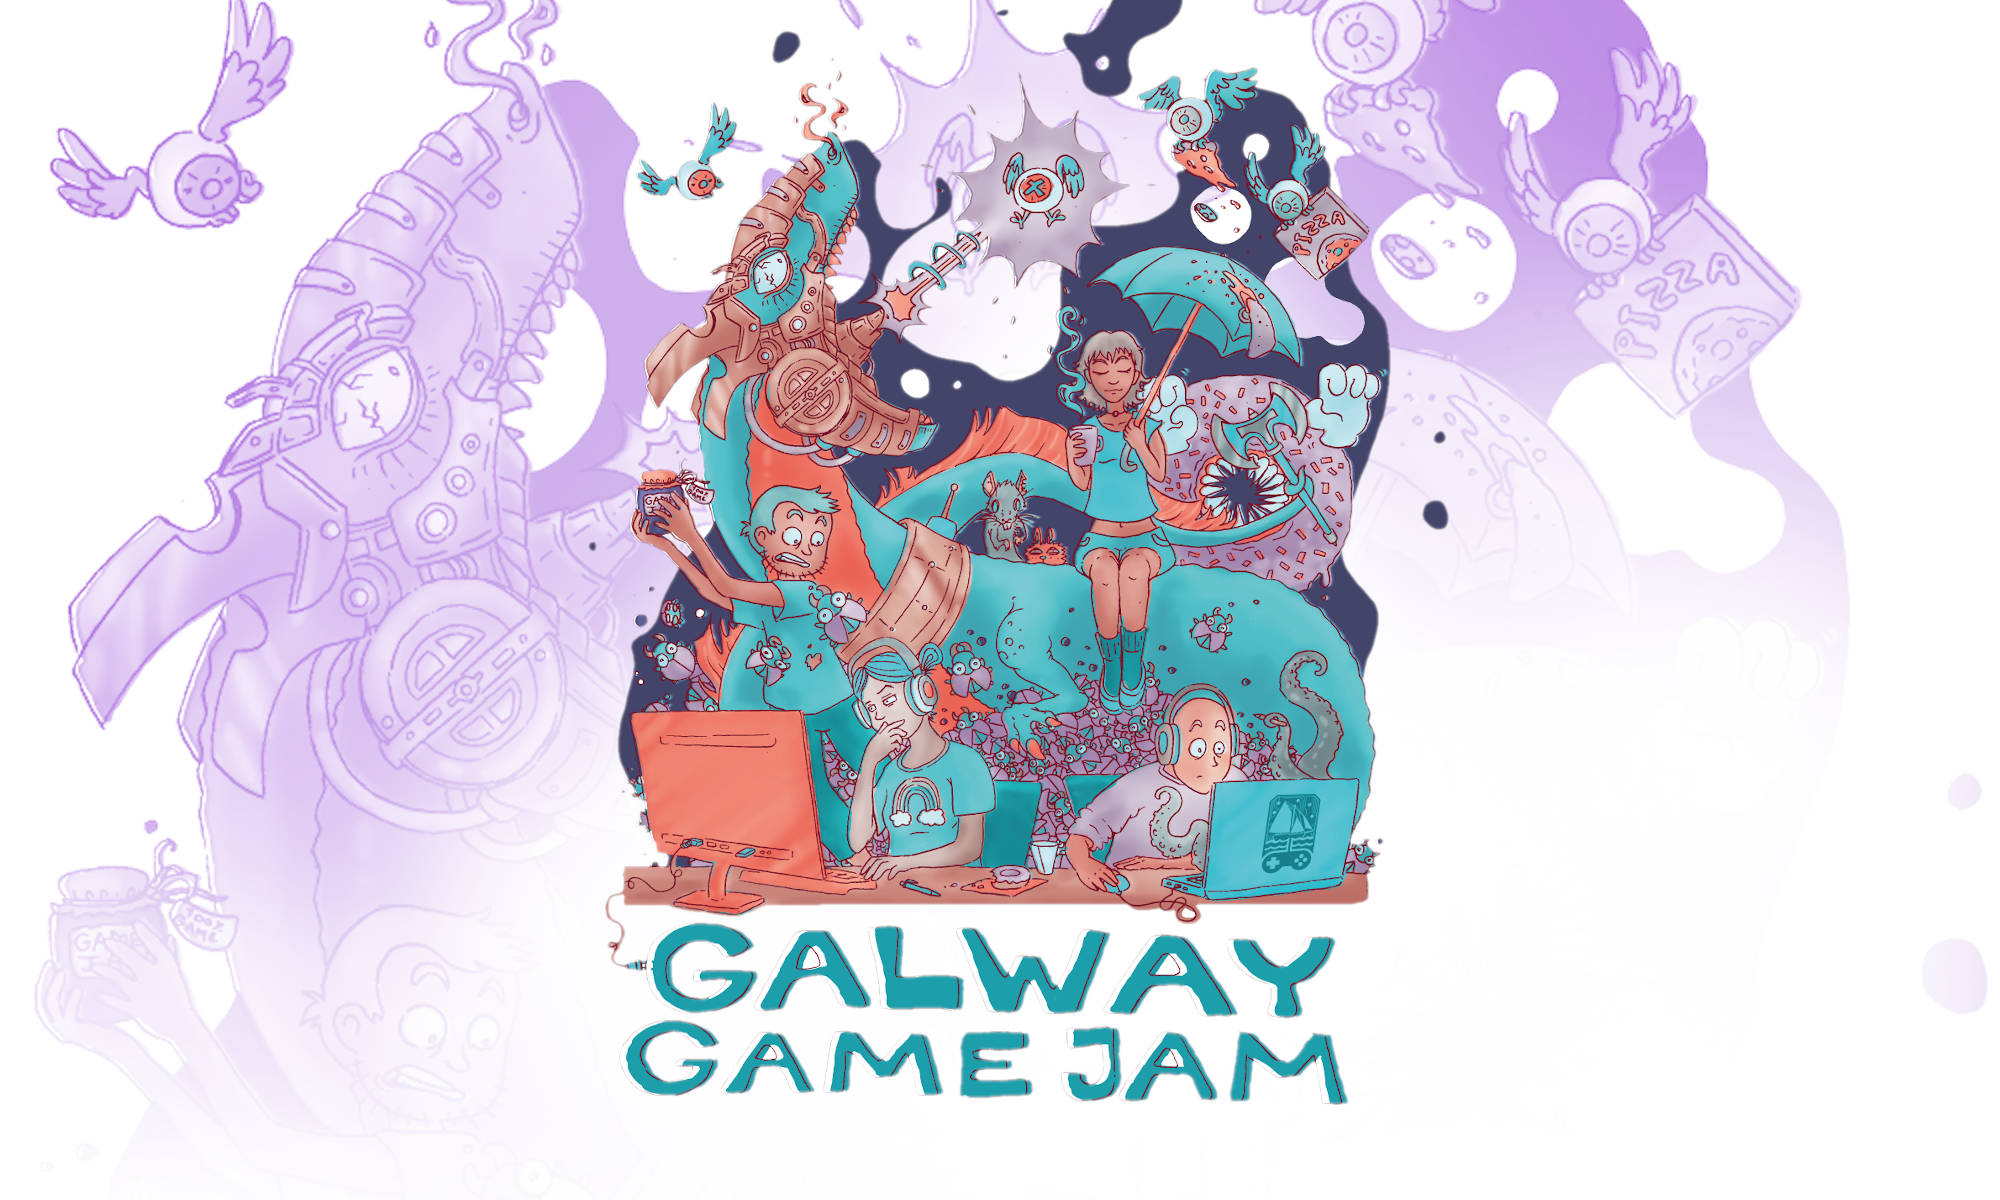 Galway Game Jam 14 Poster. Original artwork by Tia Friedel, GreenRat